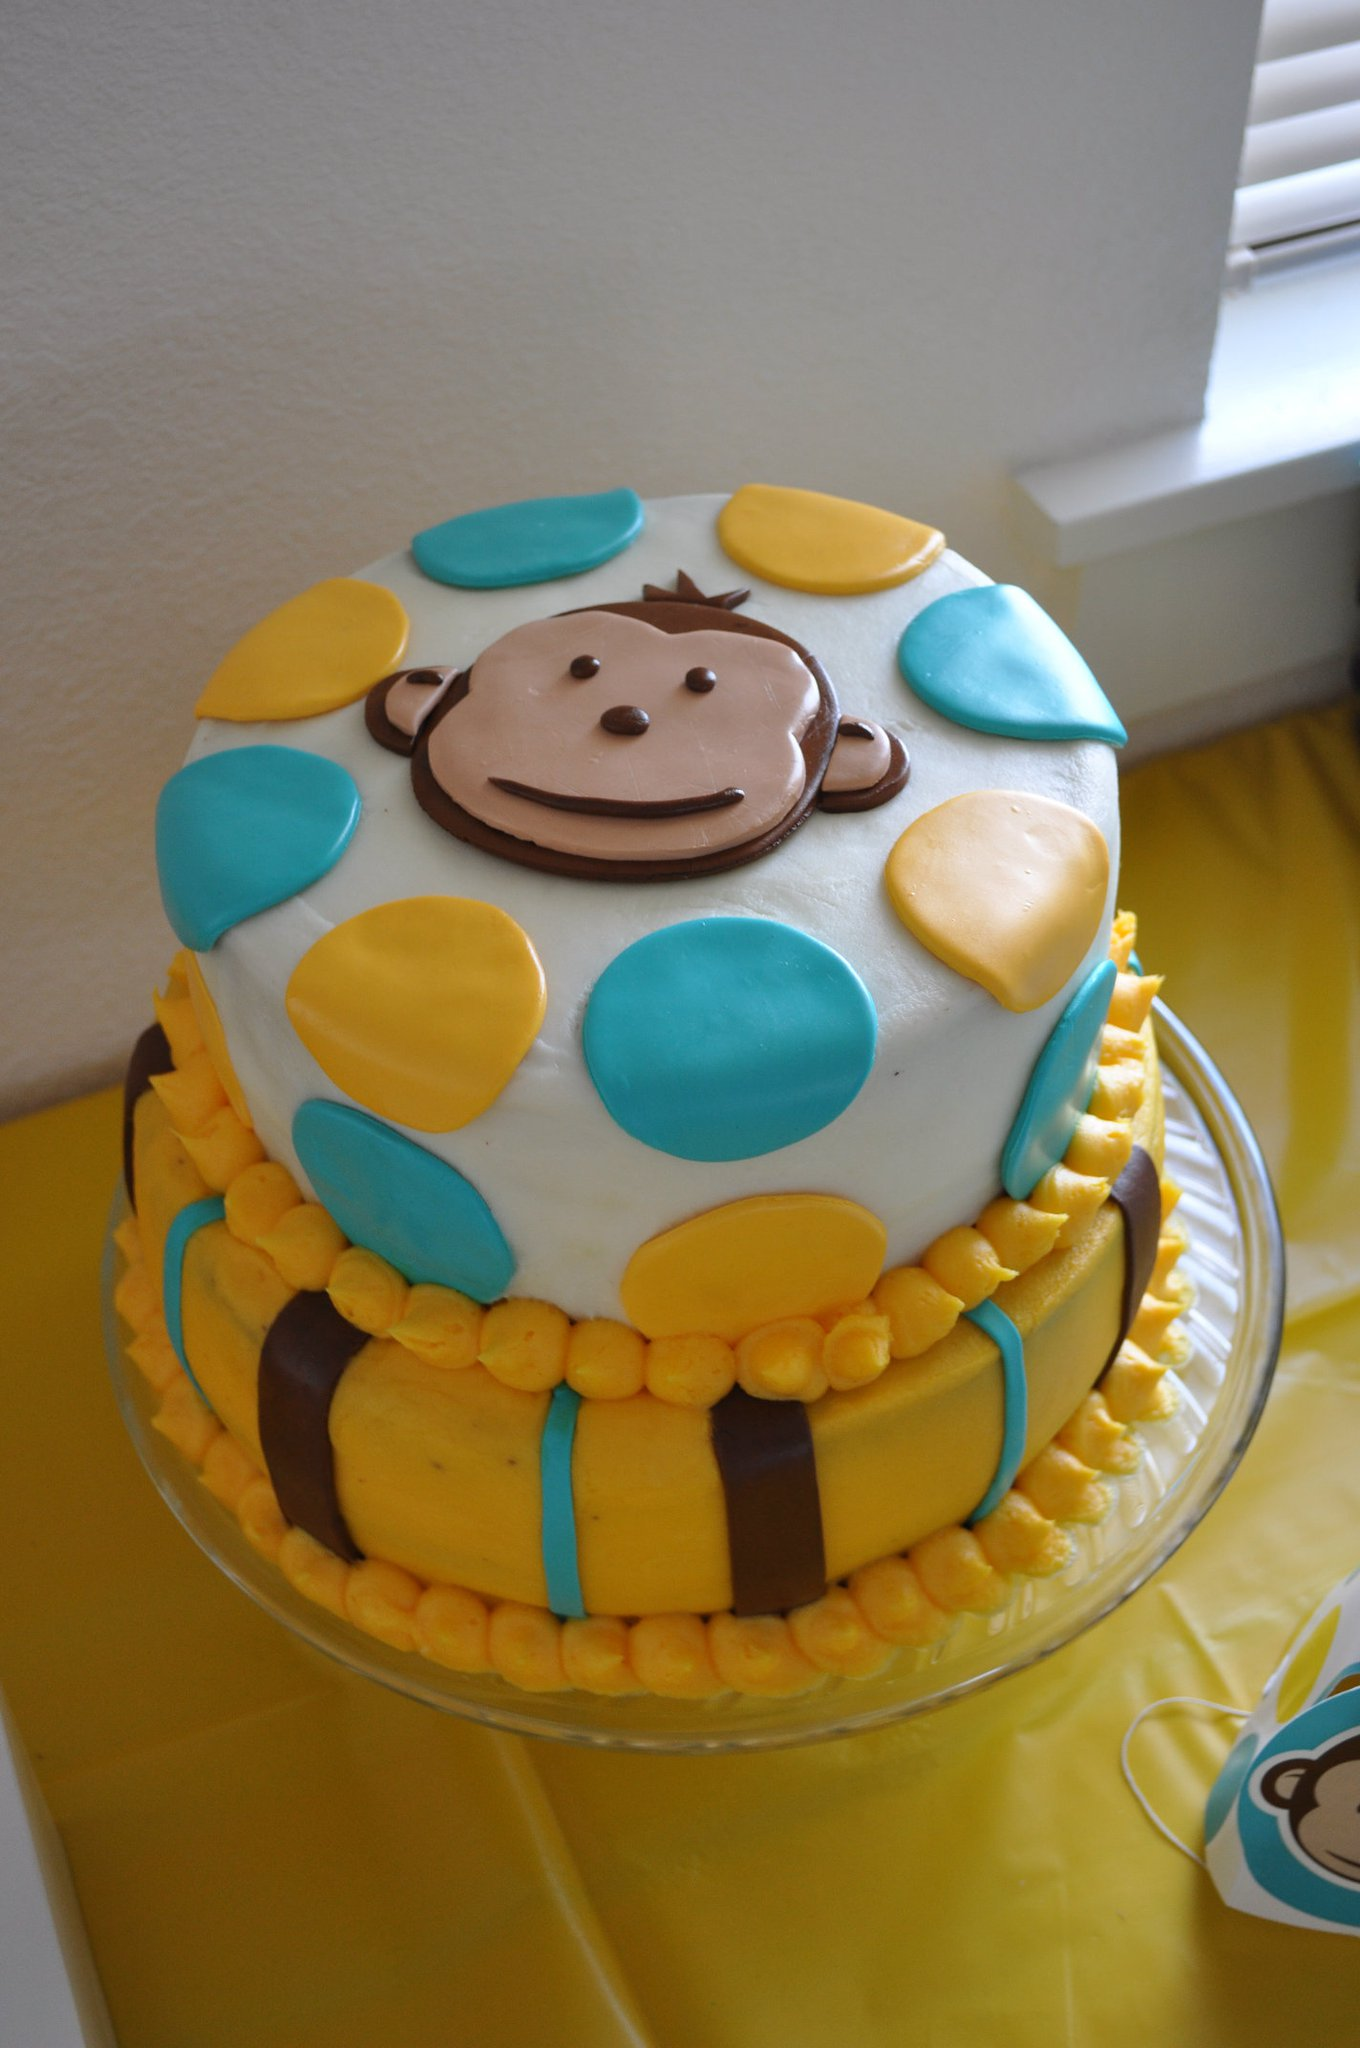 first cake was made for the first birthday of a very sweet little boy ...